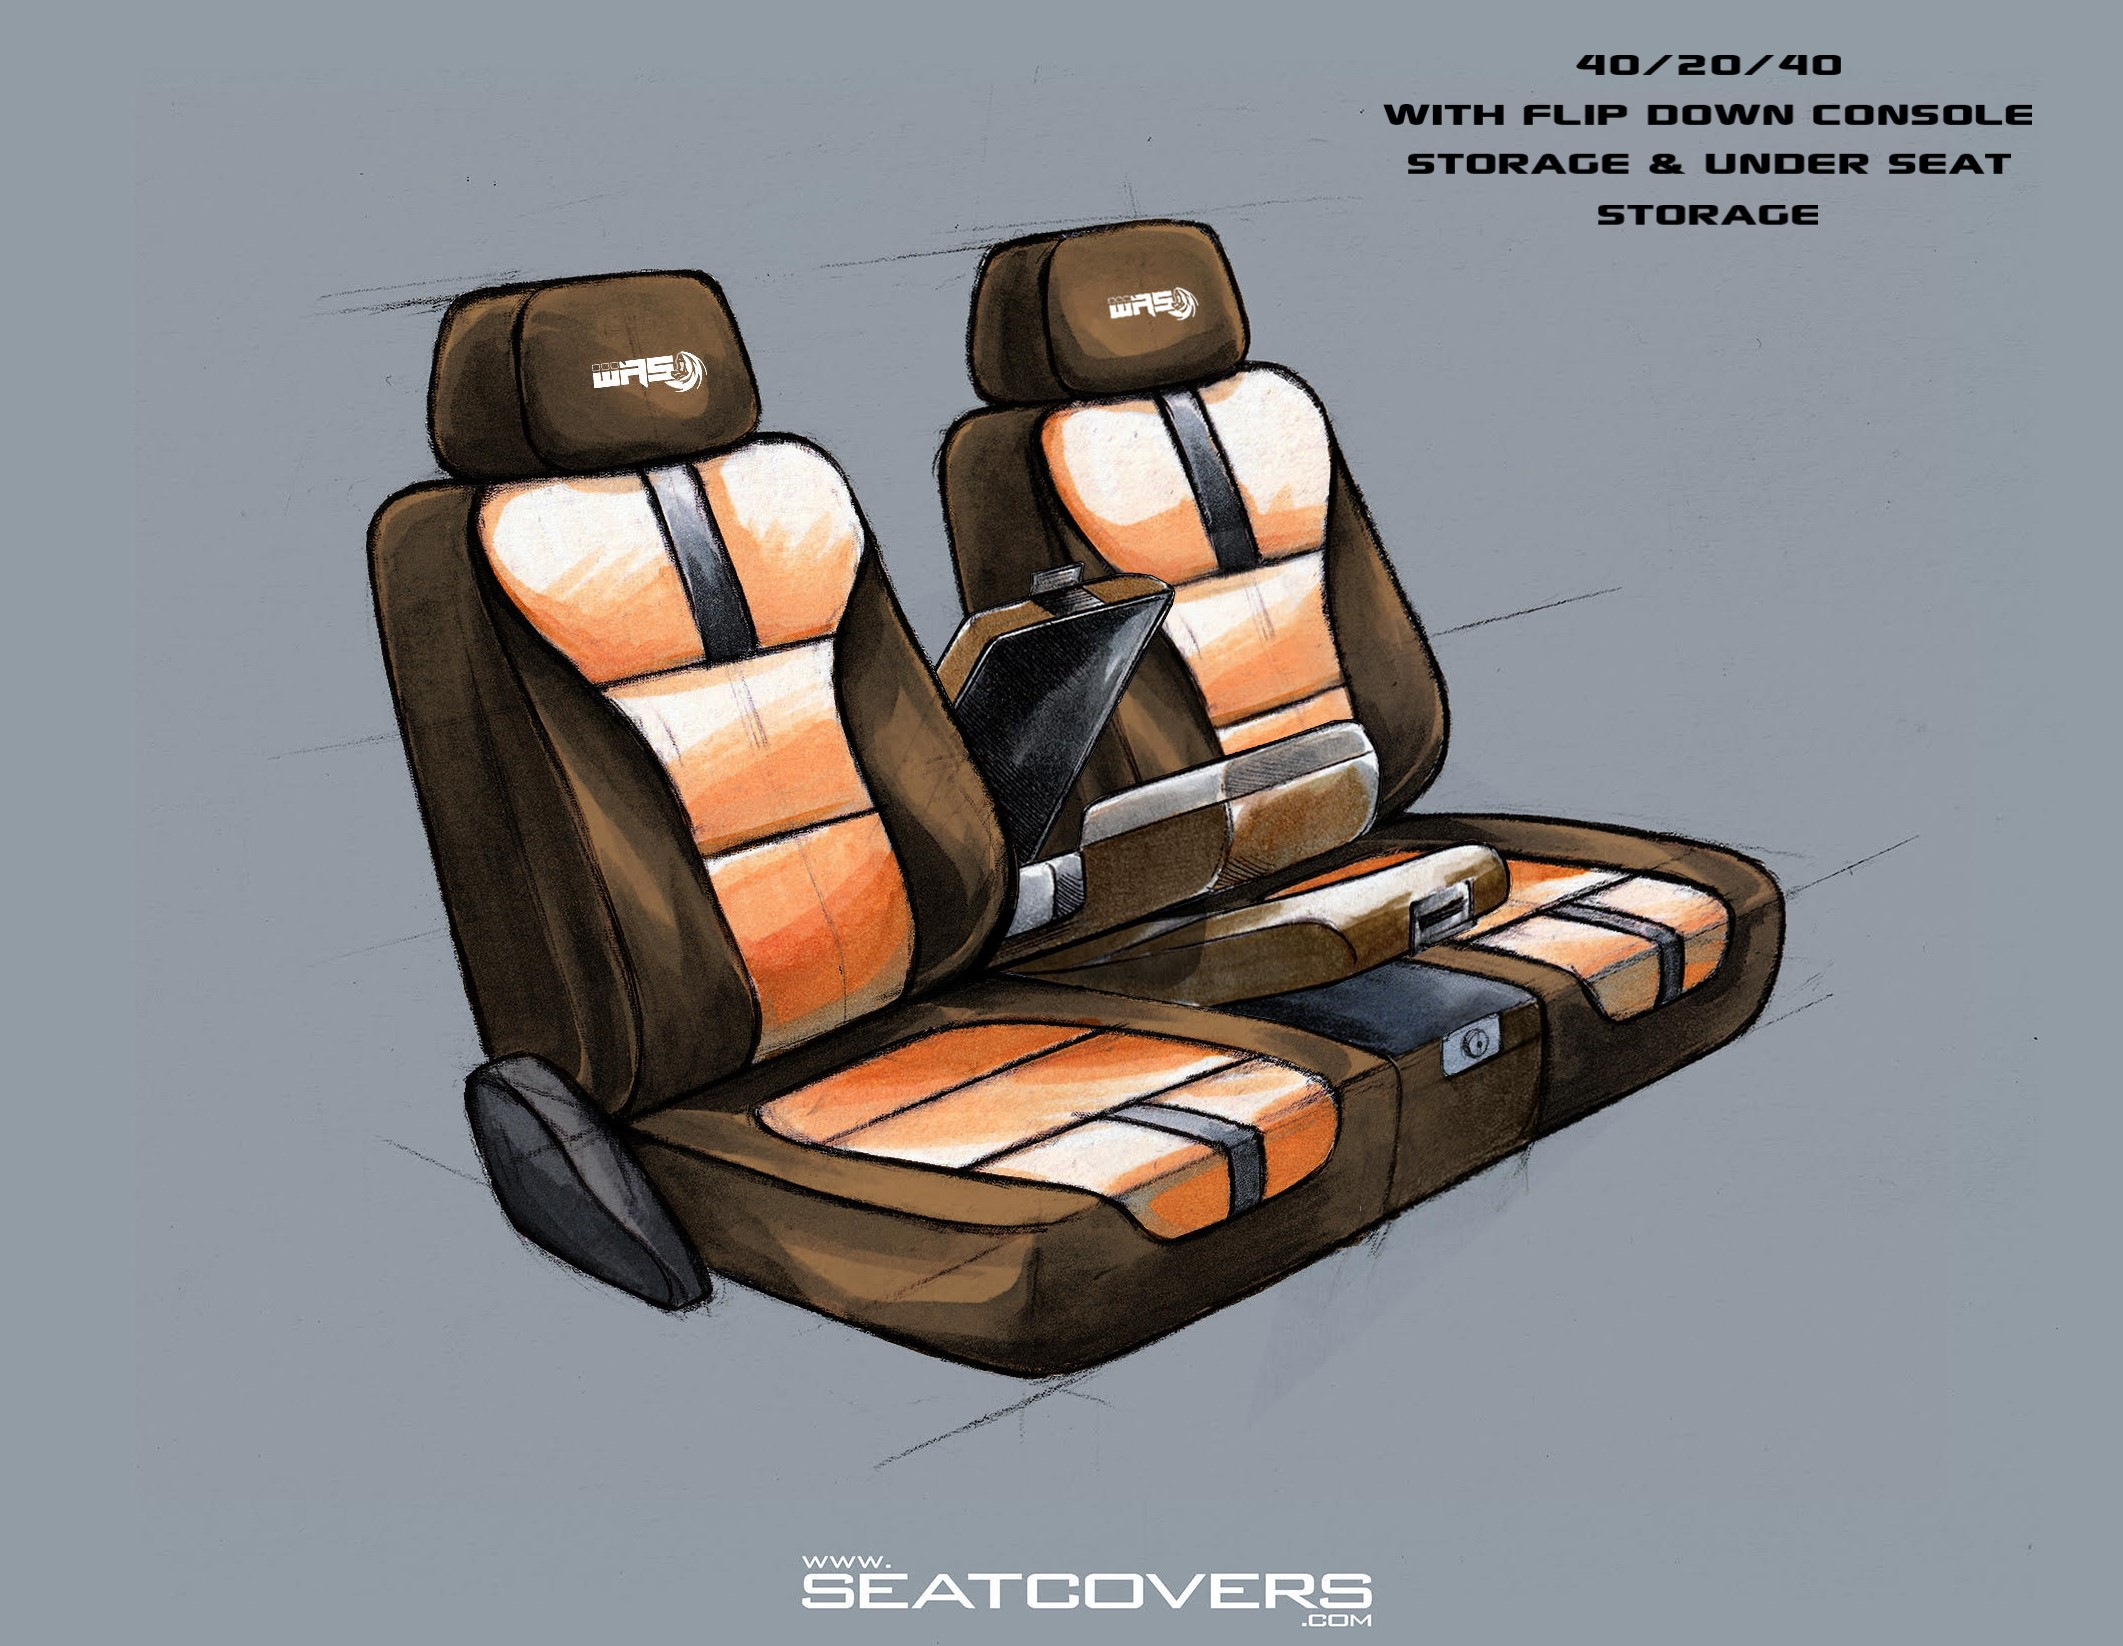 Ford F150 Seat Covers Truck Seat Covers – seatcovers.com